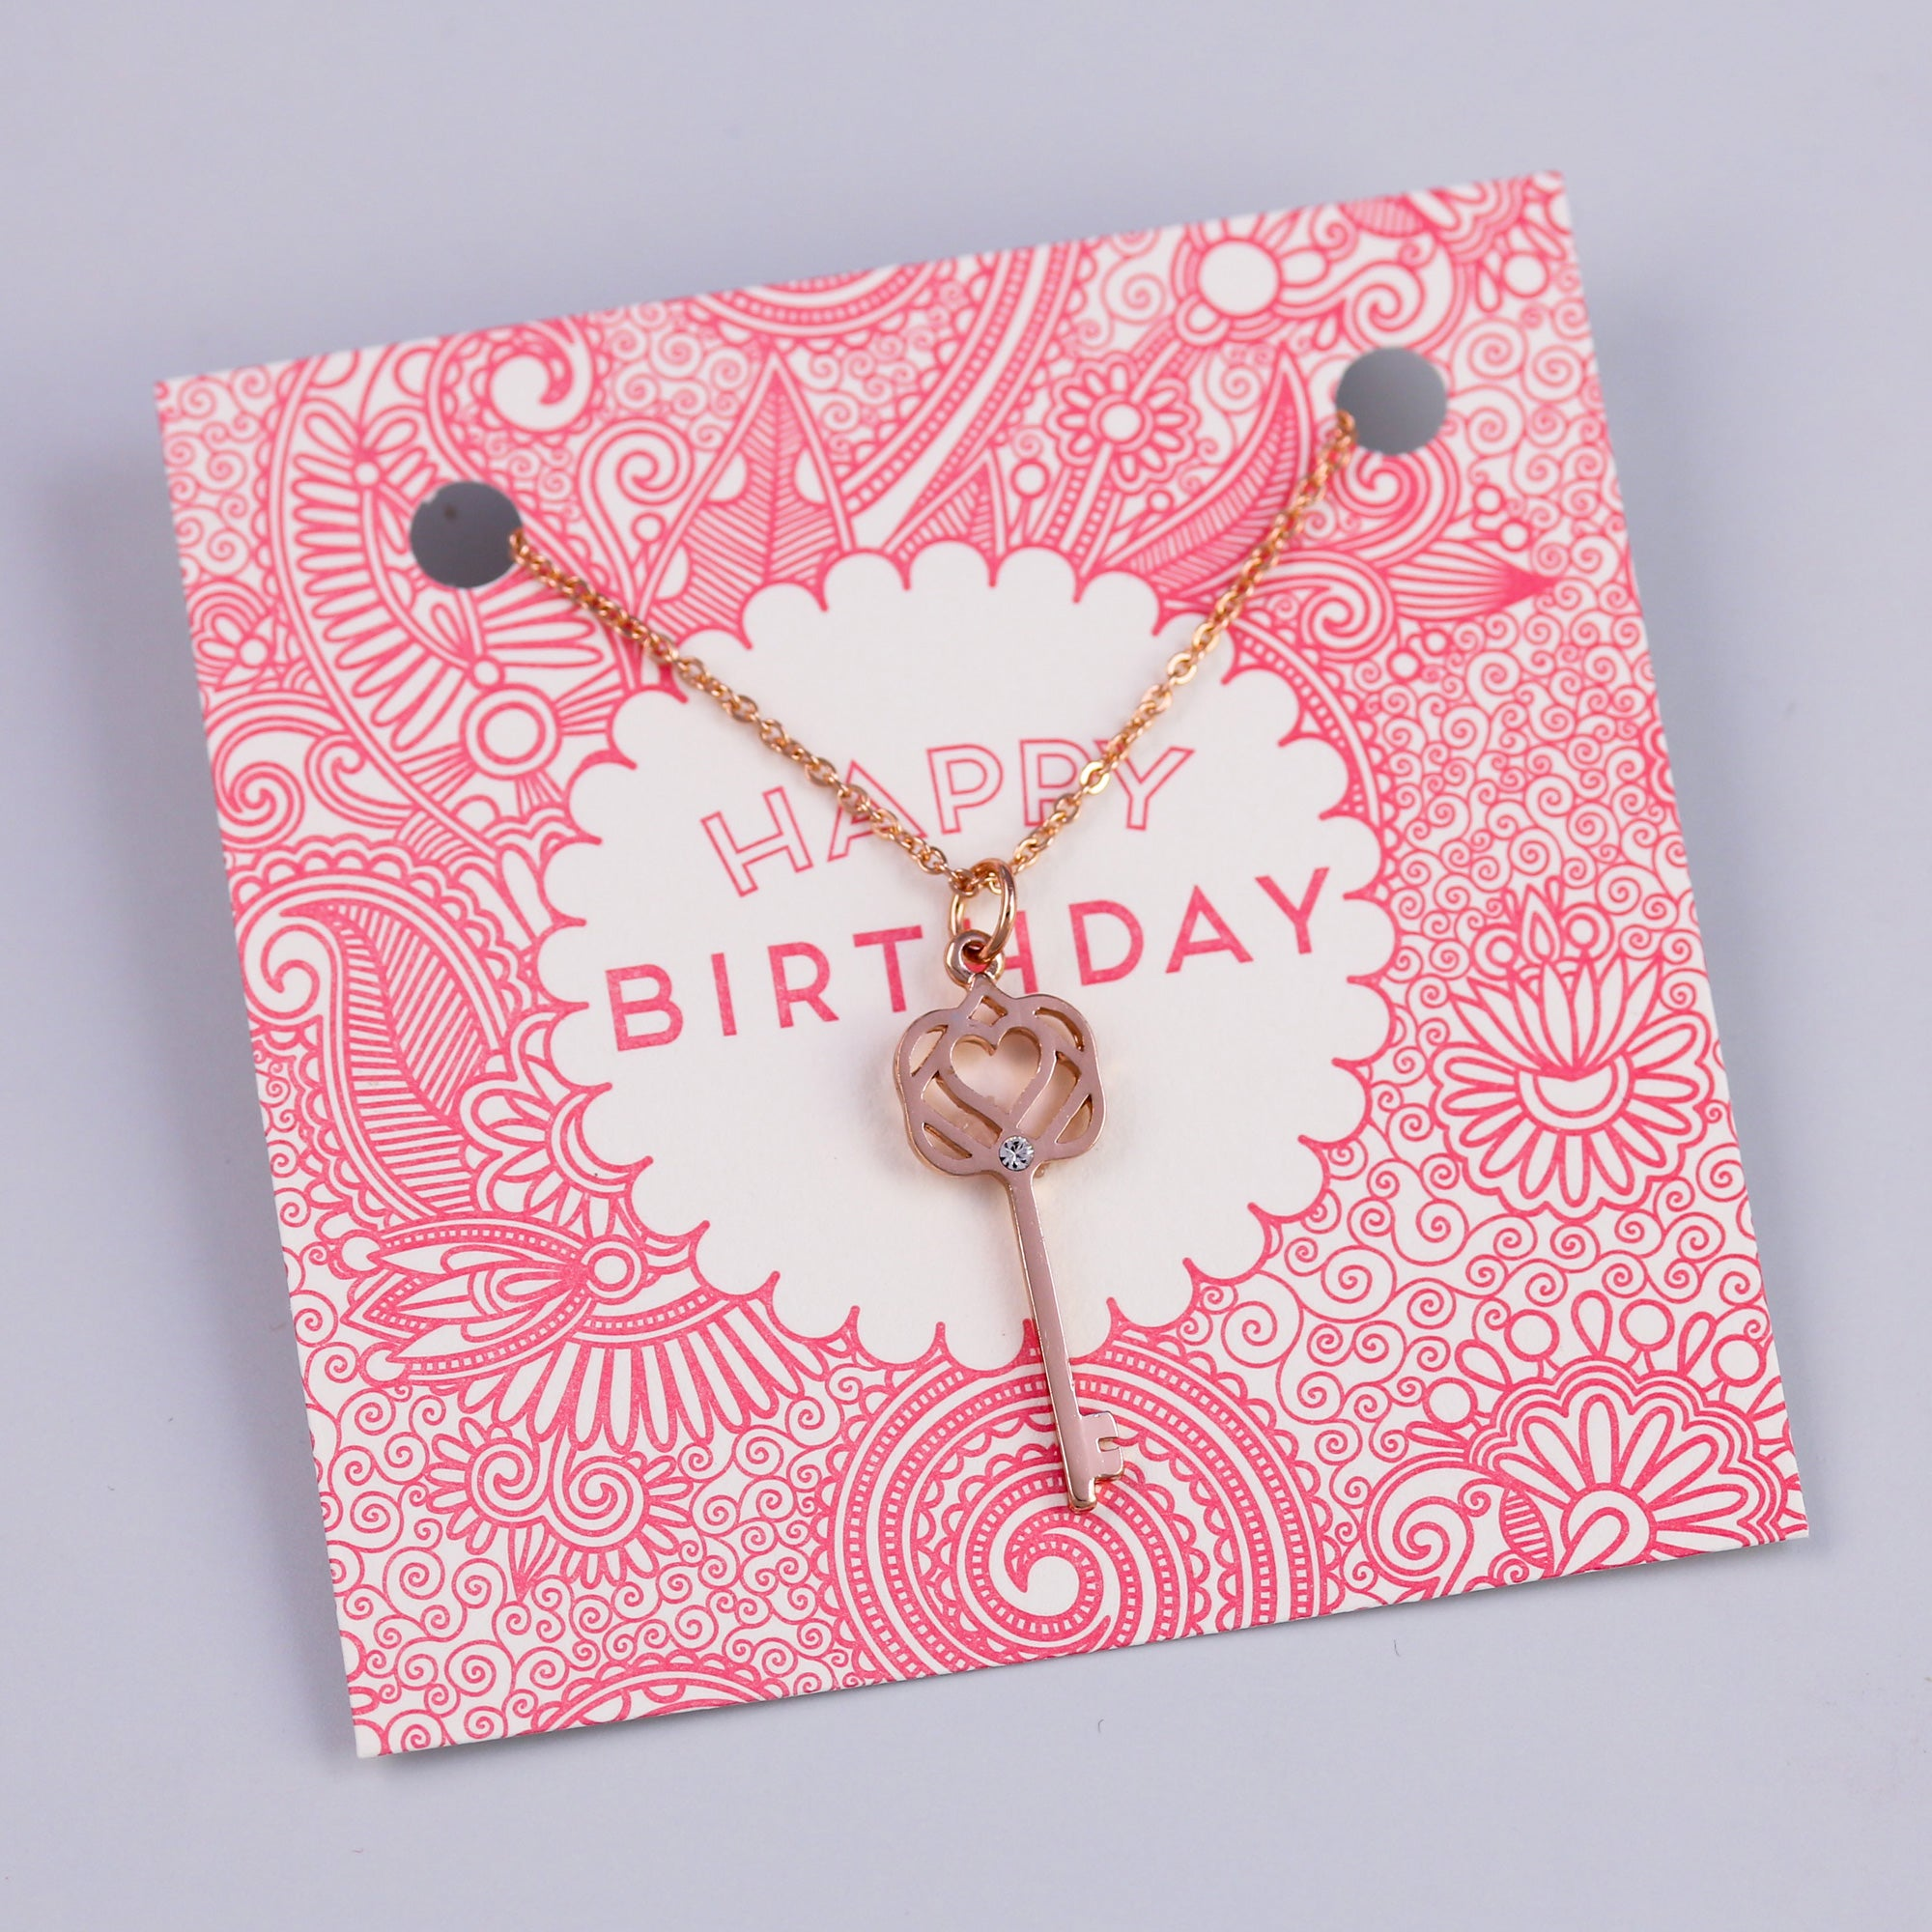 Happy Birthday Sentiment Card with Rose Gold Key Necklace